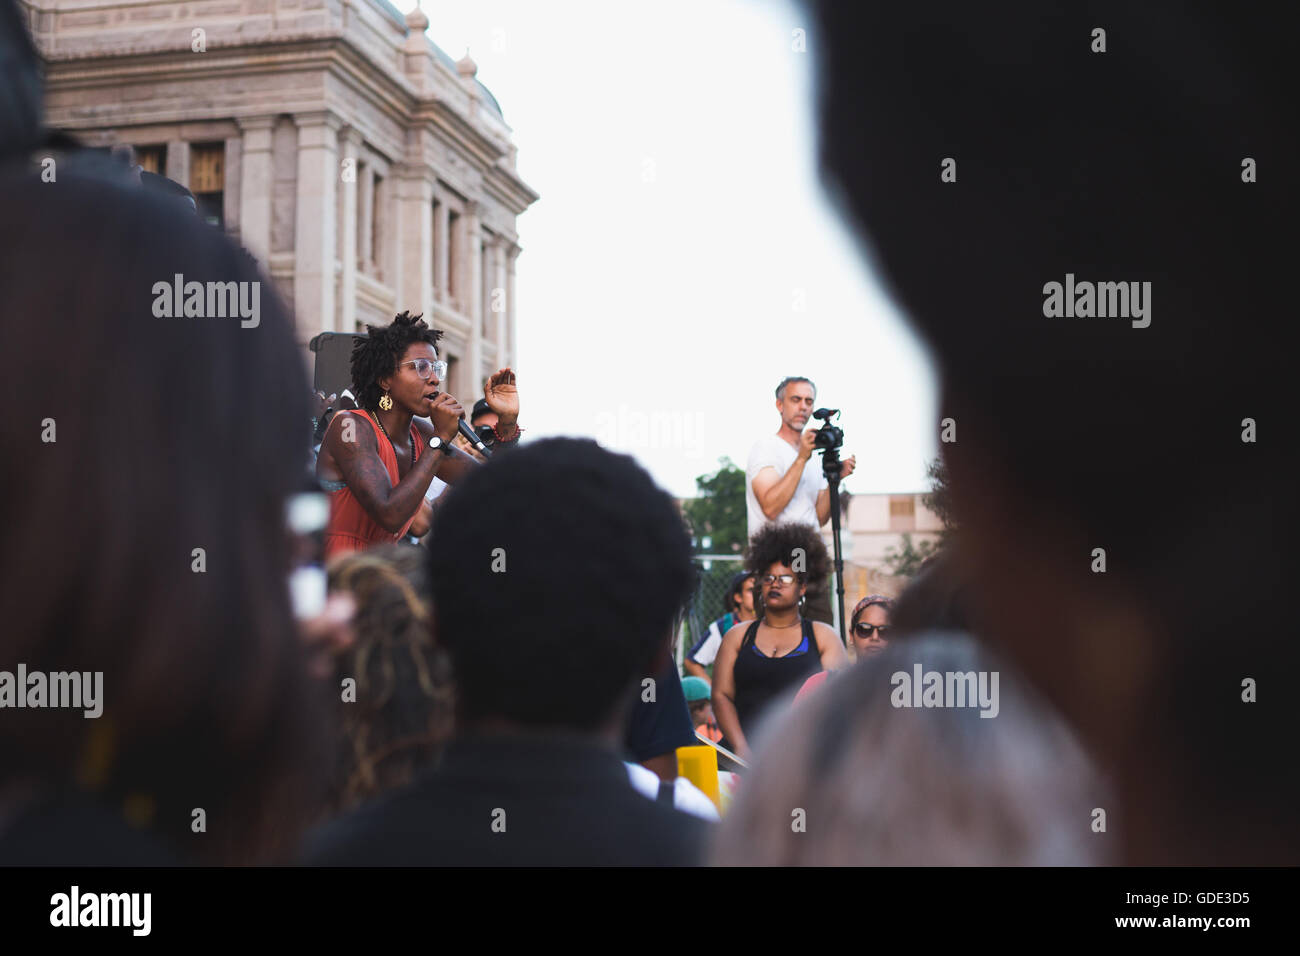 Texas, USA. 15th July, 2016. Black Lives Matter Protest in front of Texas Capitol Building Credit:  Corey Mendez/Alamy - Stock Image